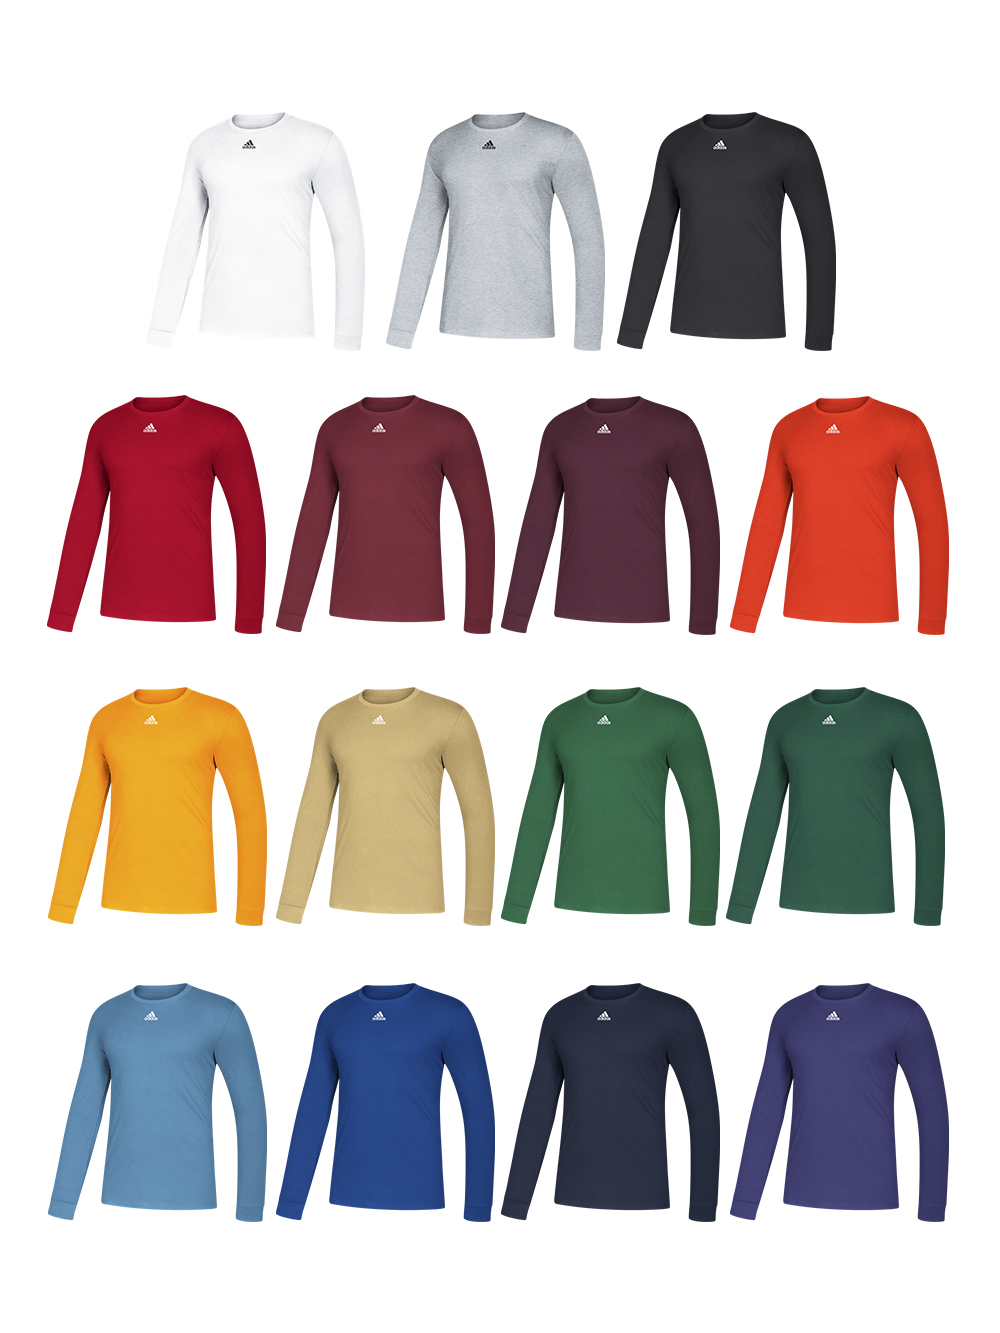 Adidas Men's Amplifier Long Sleeve Tee | Midwest Volleyball Warehouse